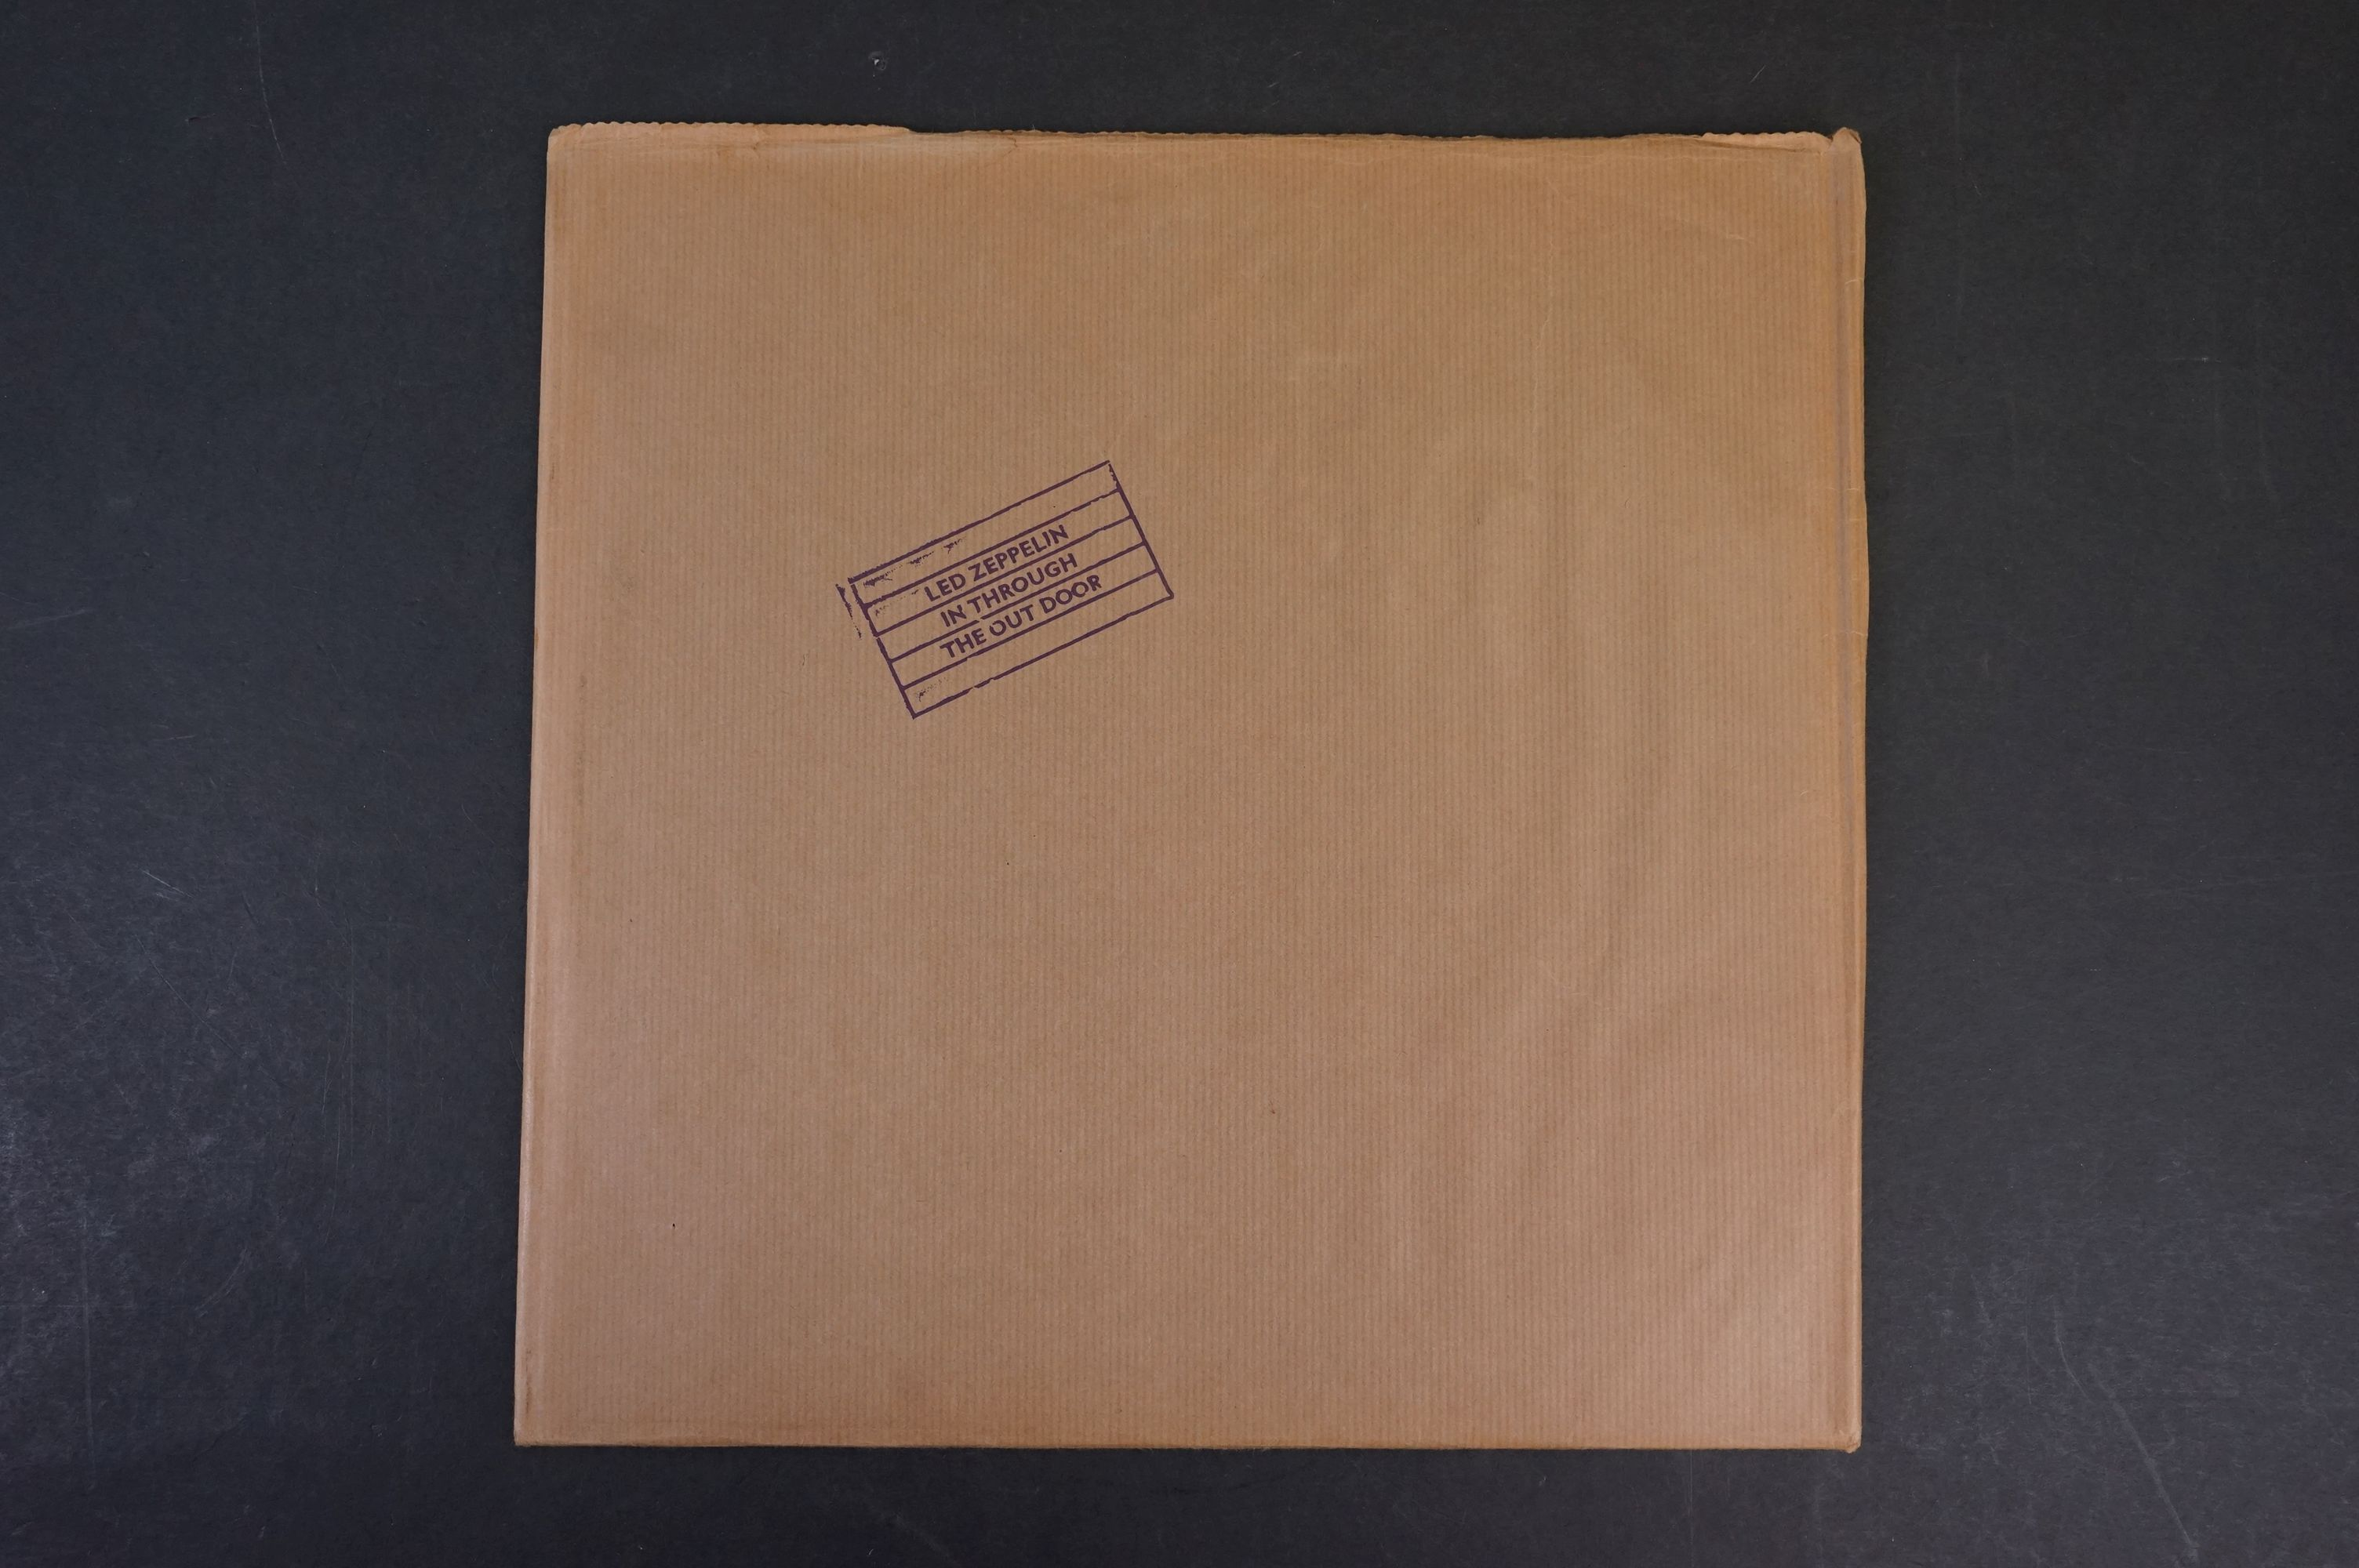 Vinyl - Six Led Zeppelin LPs to include In Through the Outdoor (cover D) SSK59410, Coda 790051, 2 - Image 14 of 17